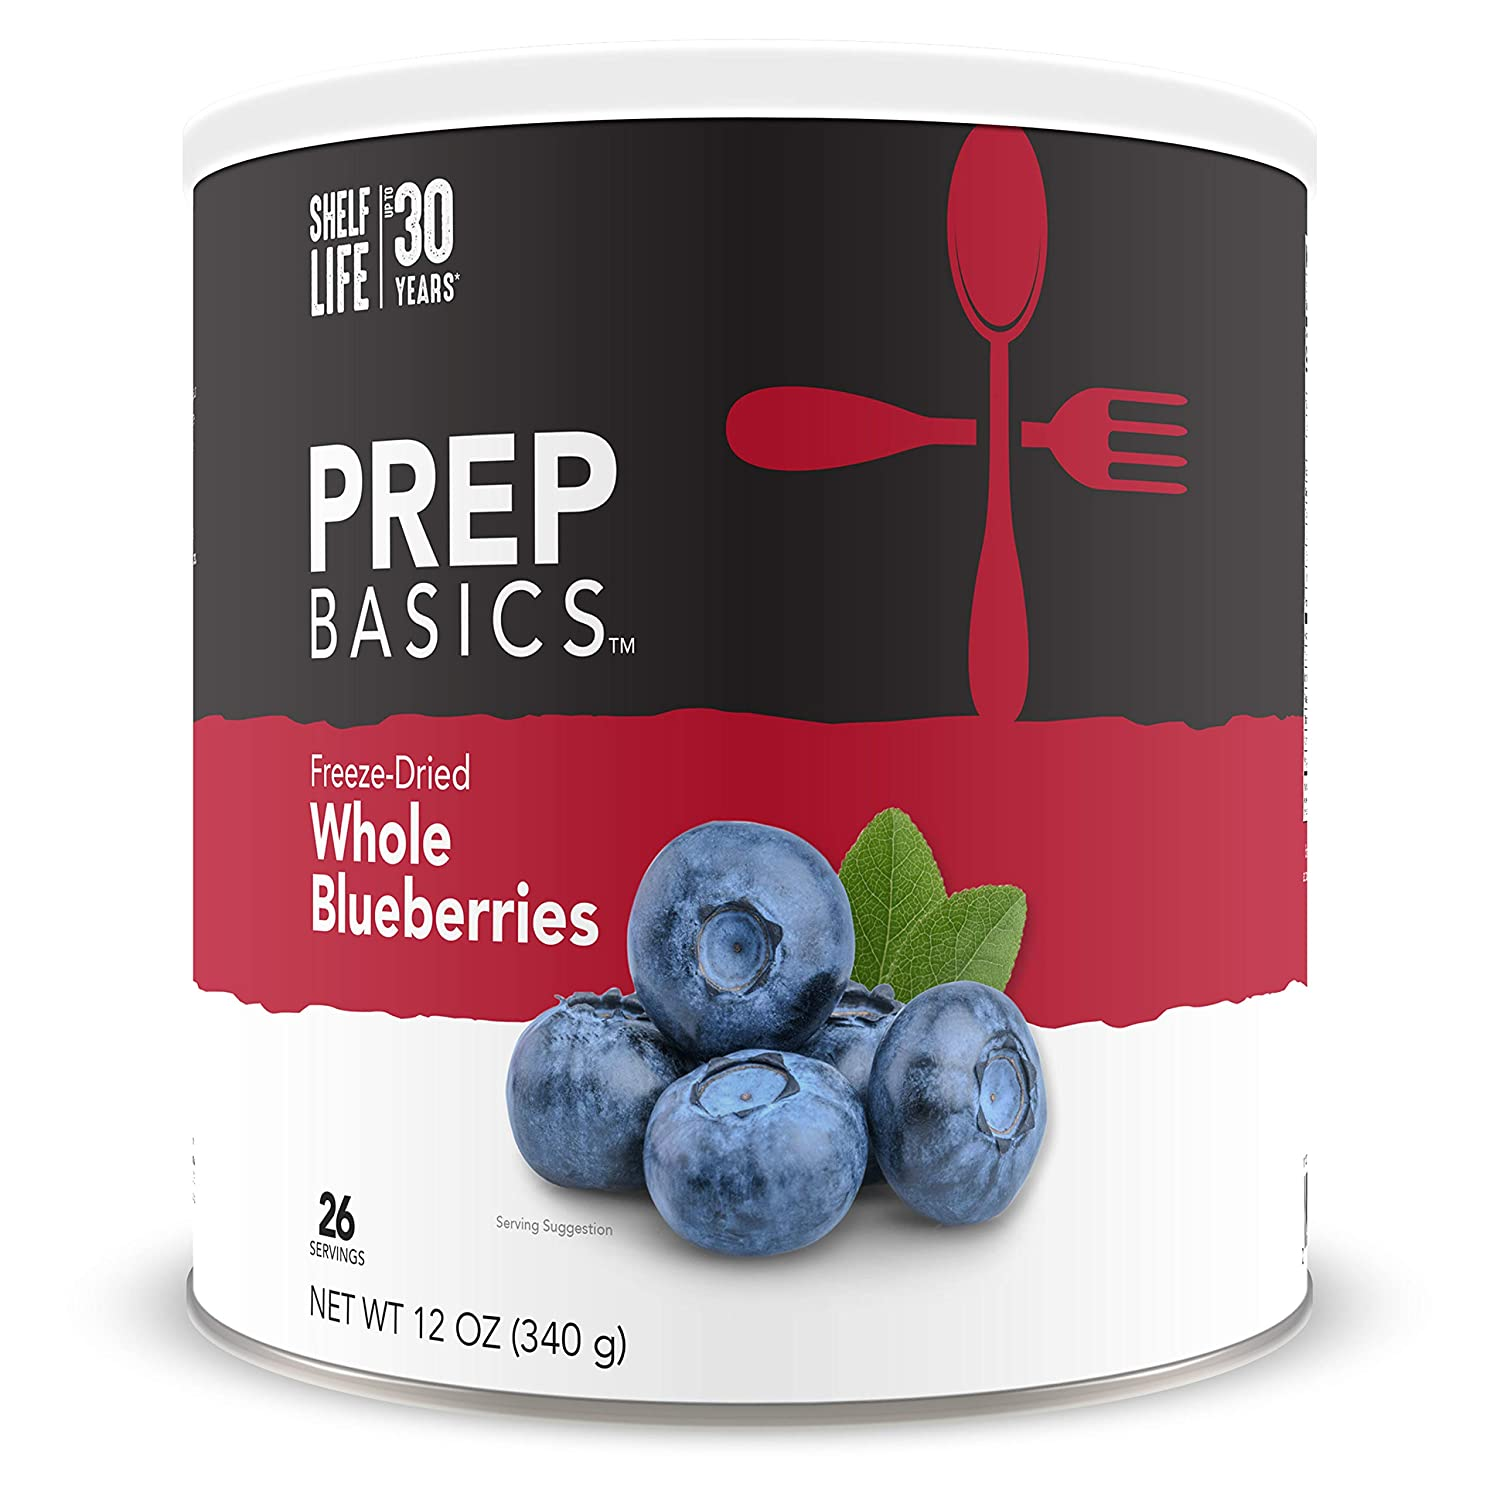 Prep Basics Freeze-Dried Whole Blueberries   Emergency Food Supply   1,170 Total Calories   26 Total Grams Protein   Up to 30 Year Shelf Life   No. 10 Can